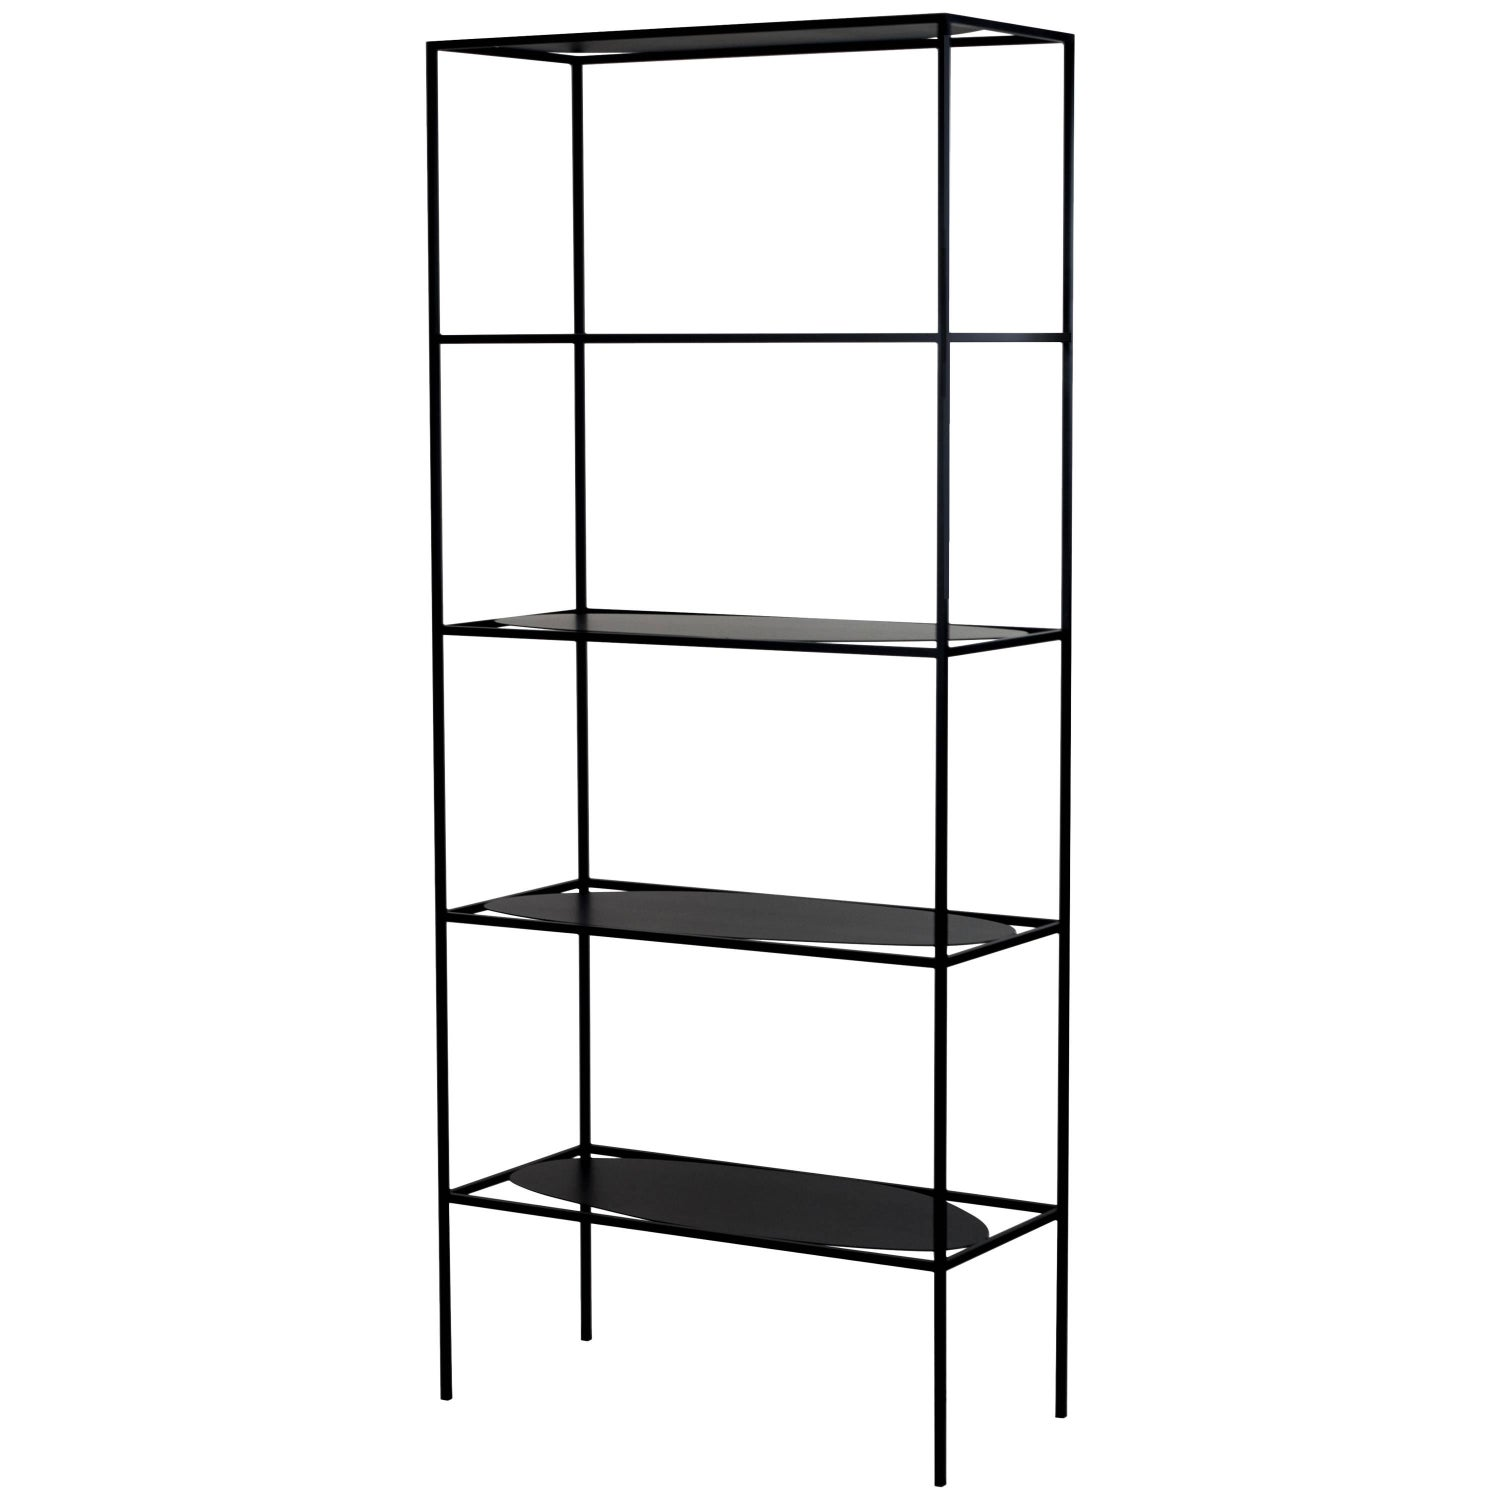 Modern Shelves 137 For Sale At 1stdibs # Etagere Vintage Plexiglas